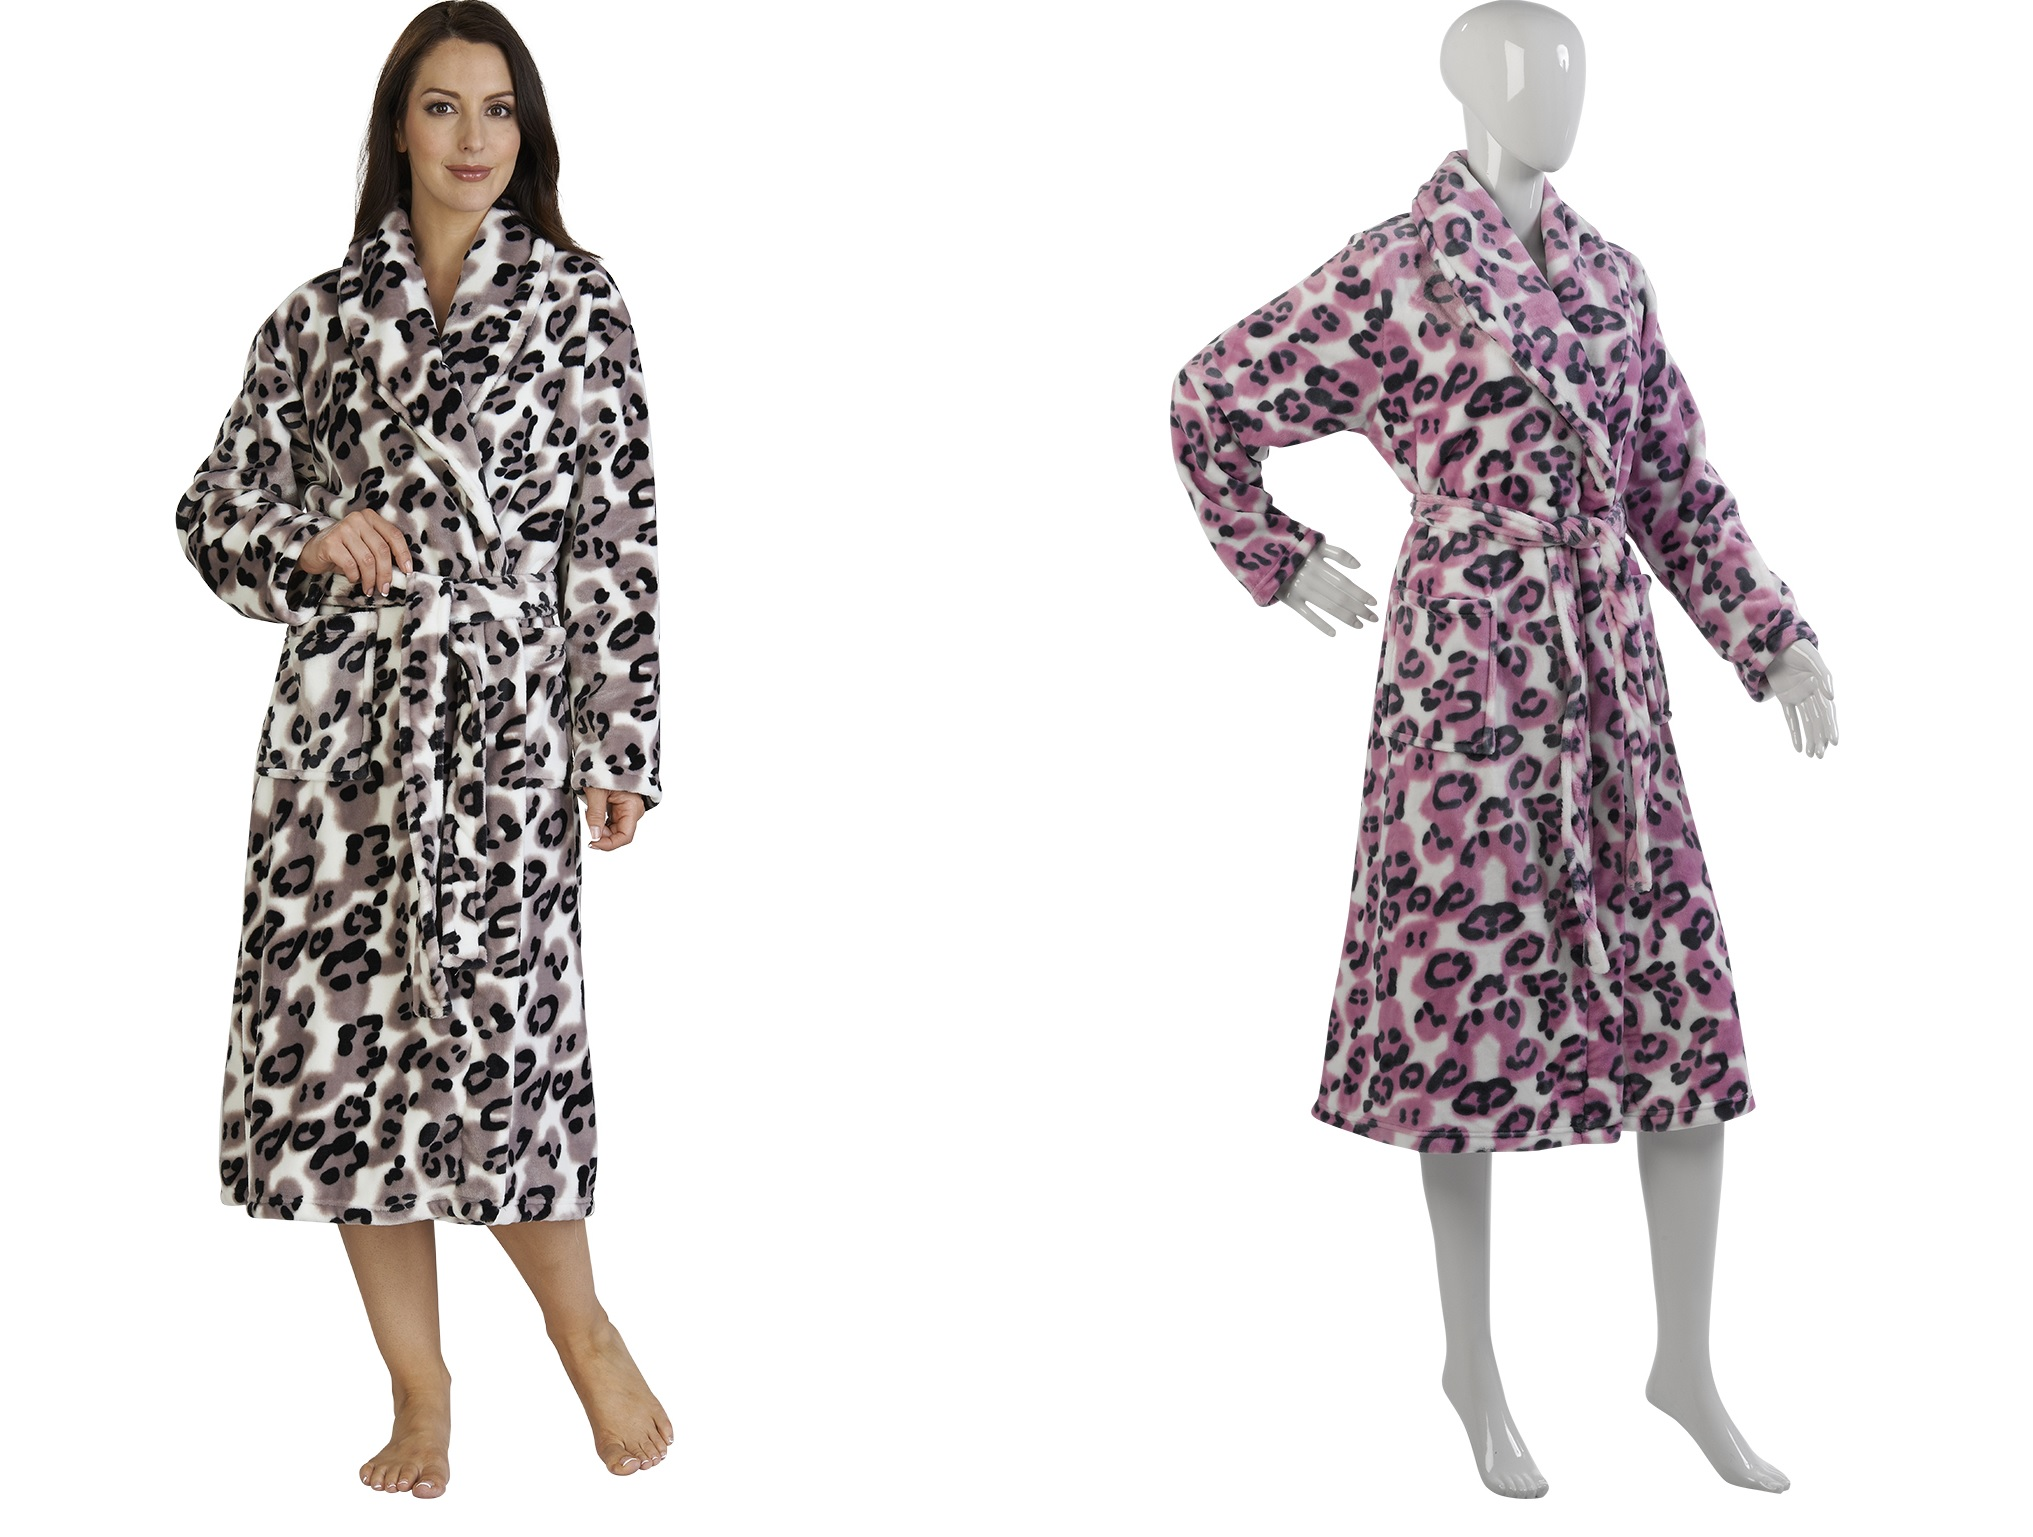 Womens Leopard Print Bath Robe Soft Luxury Mink Fleece Dressing Gown ...